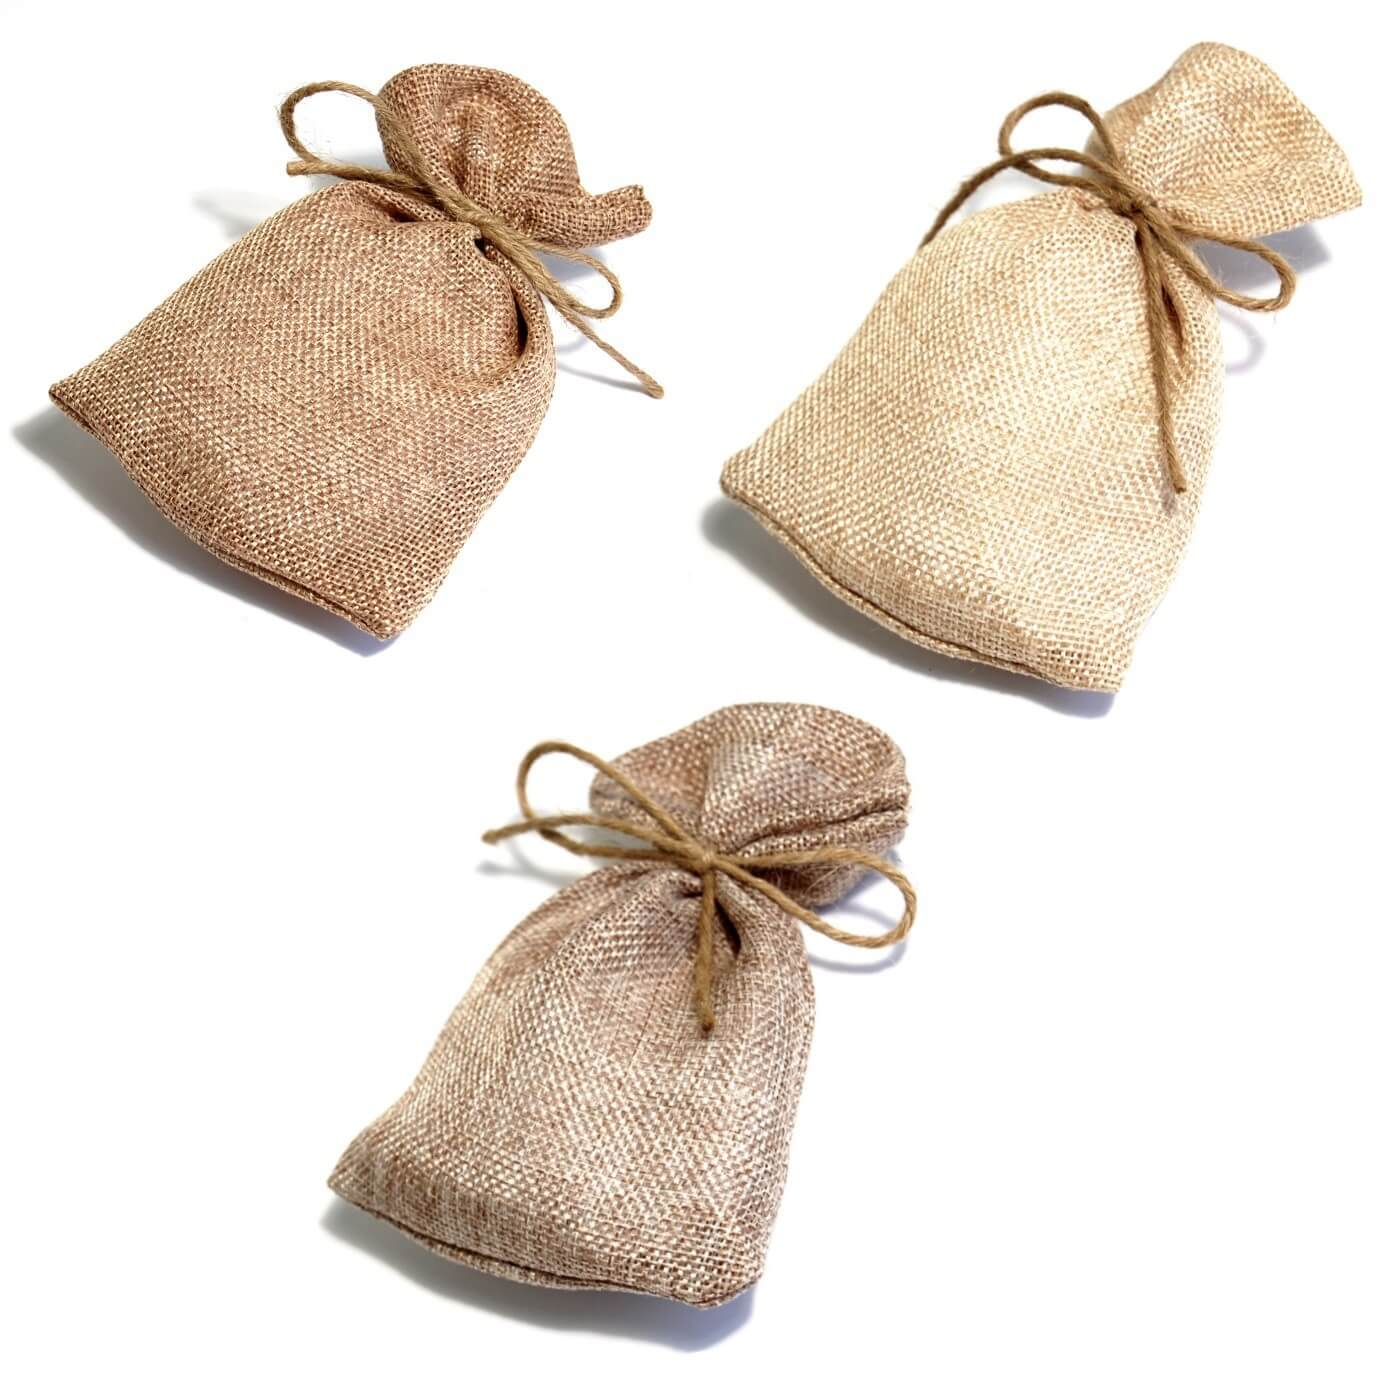 Natural Hessian Natural Wedding Party Favor Bags Burlap/Jute Decorations